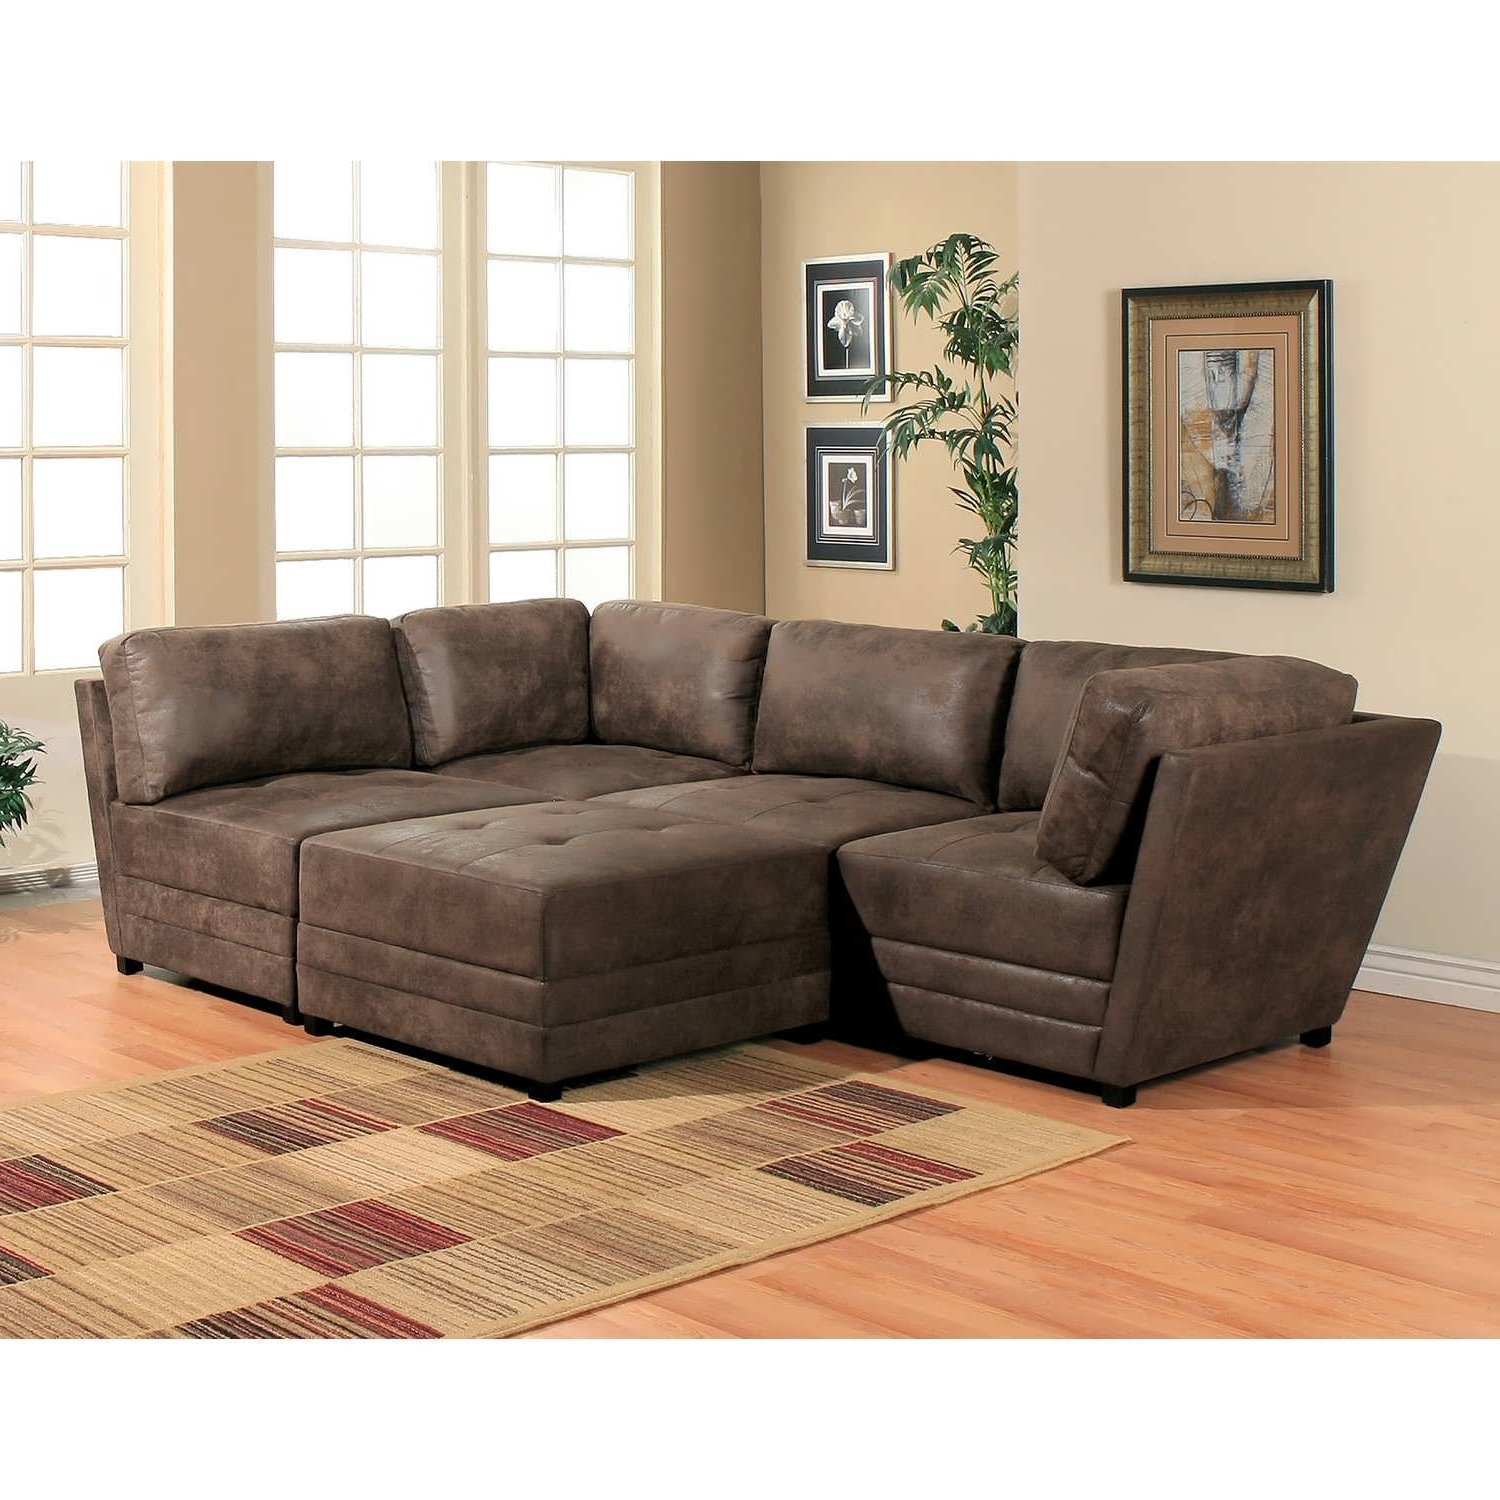 Chaise Recliners Regarding Favorite Sofa : Sectional Sofas With Recliners Small Chaise Sofa Microfiber (View 6 of 15)